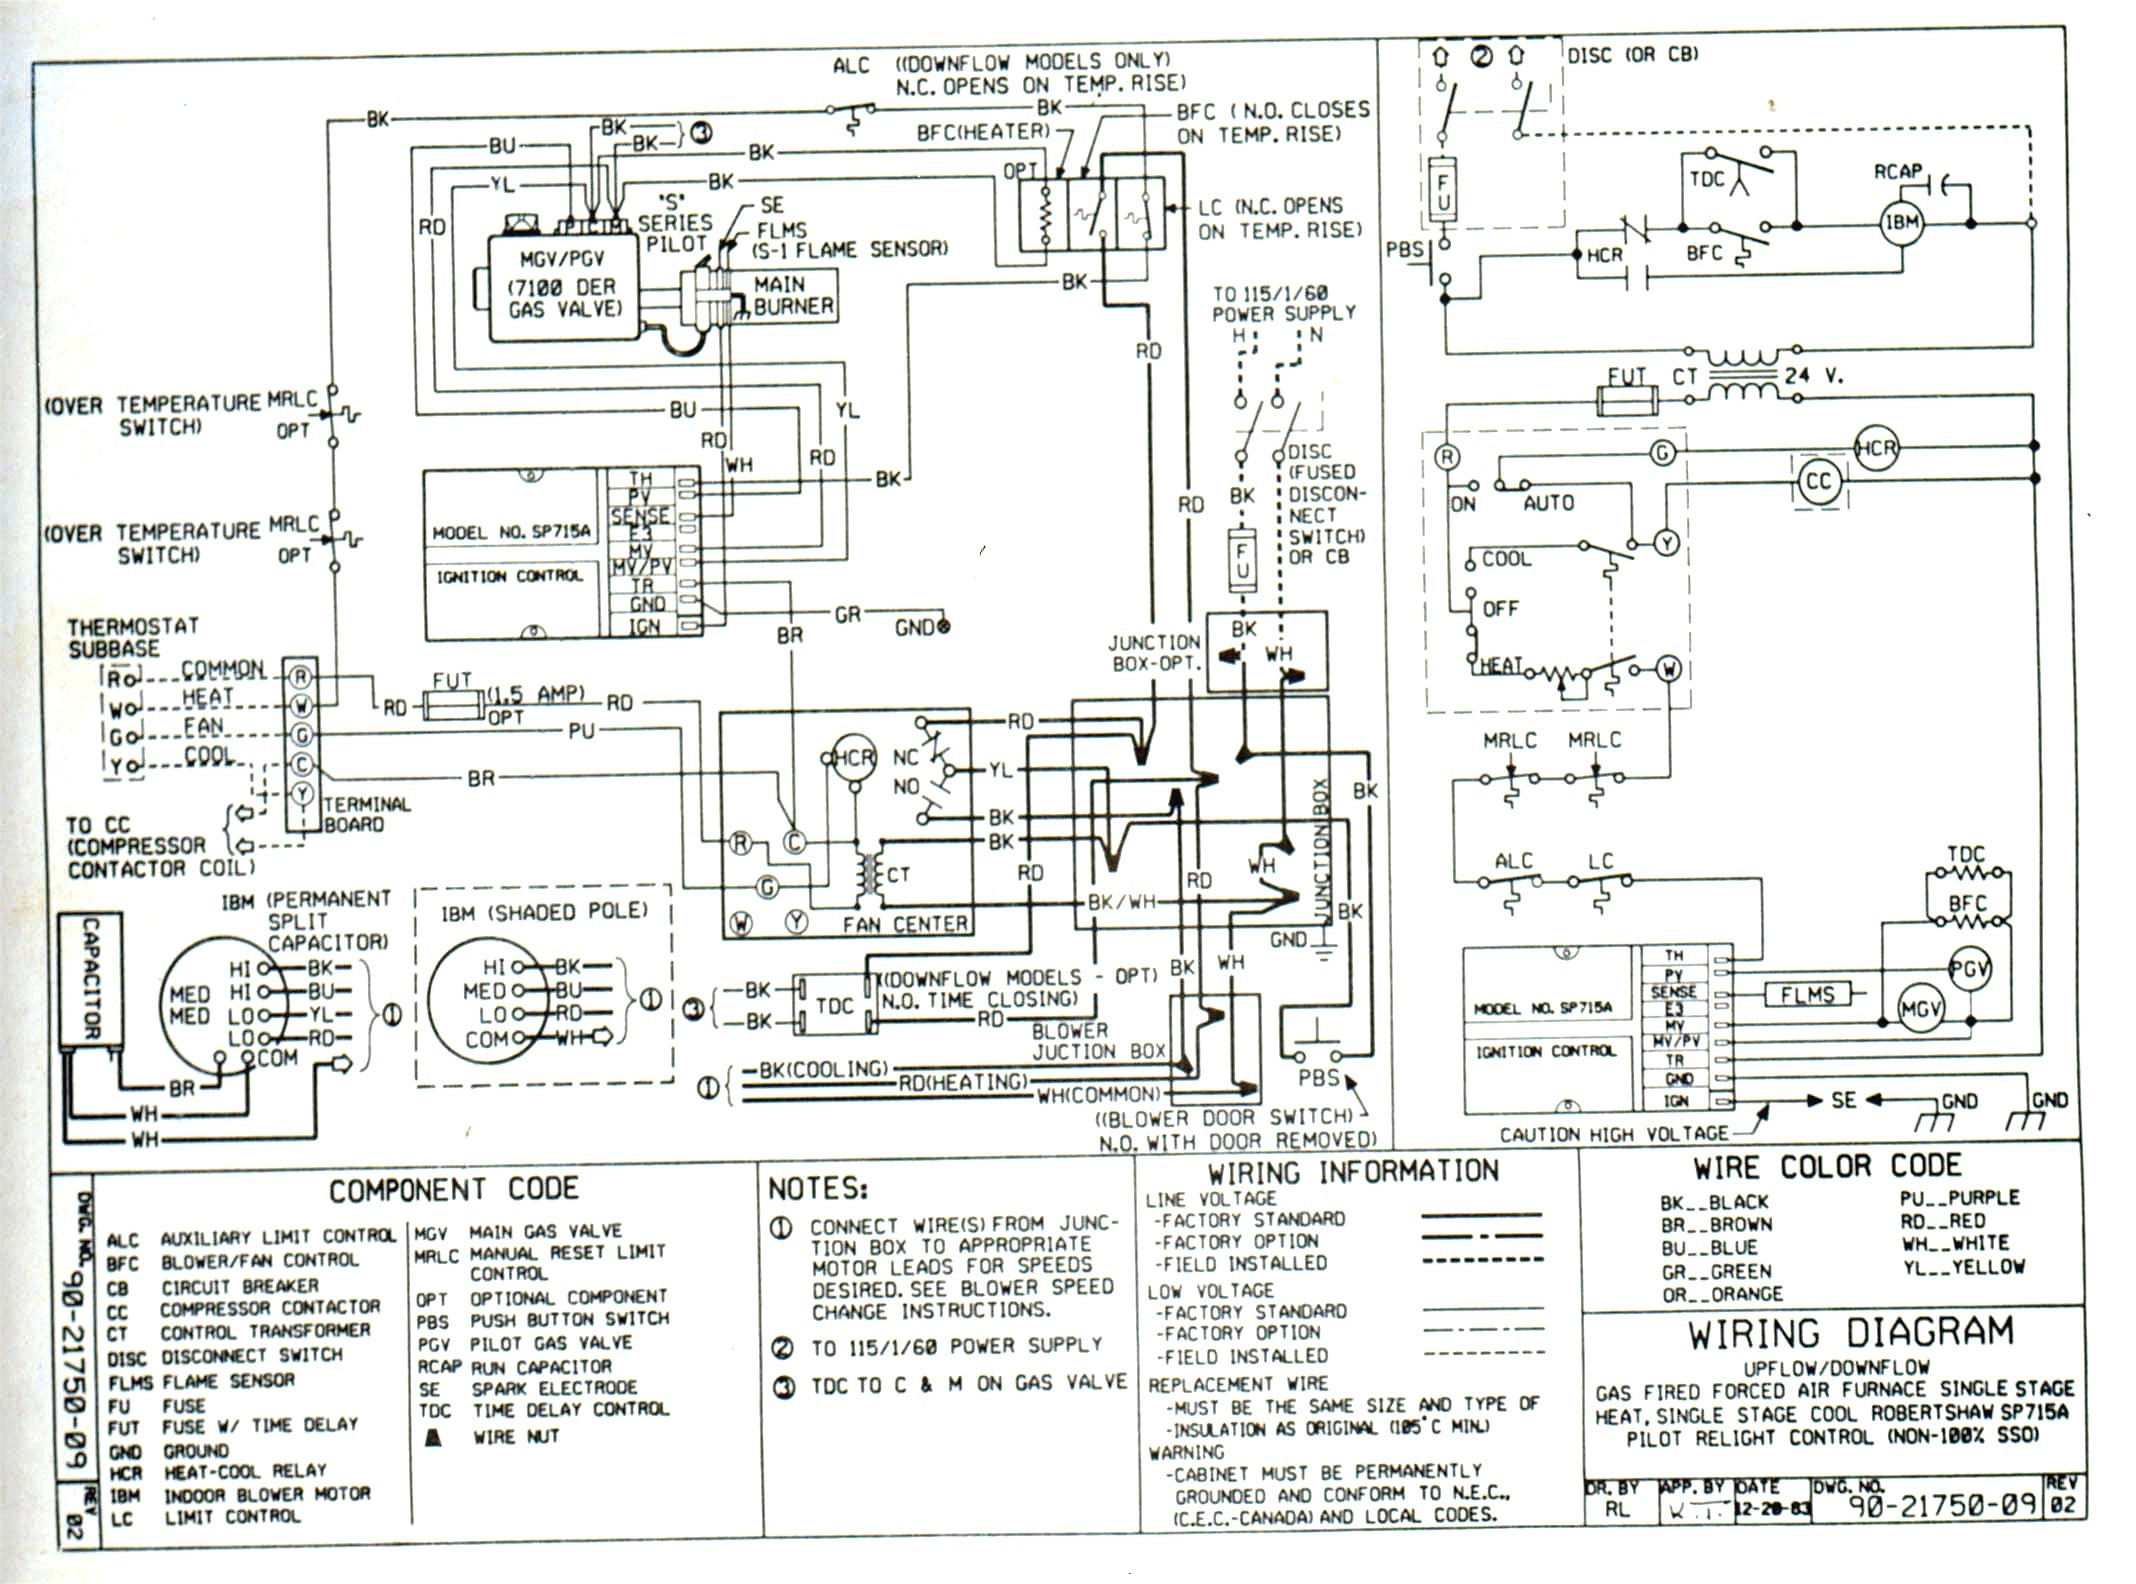 heat pump wiring diagram schematic Download-Heat Pump Wiring Diagram Best Heat Pump Wiring Diagram Schematic 8-e